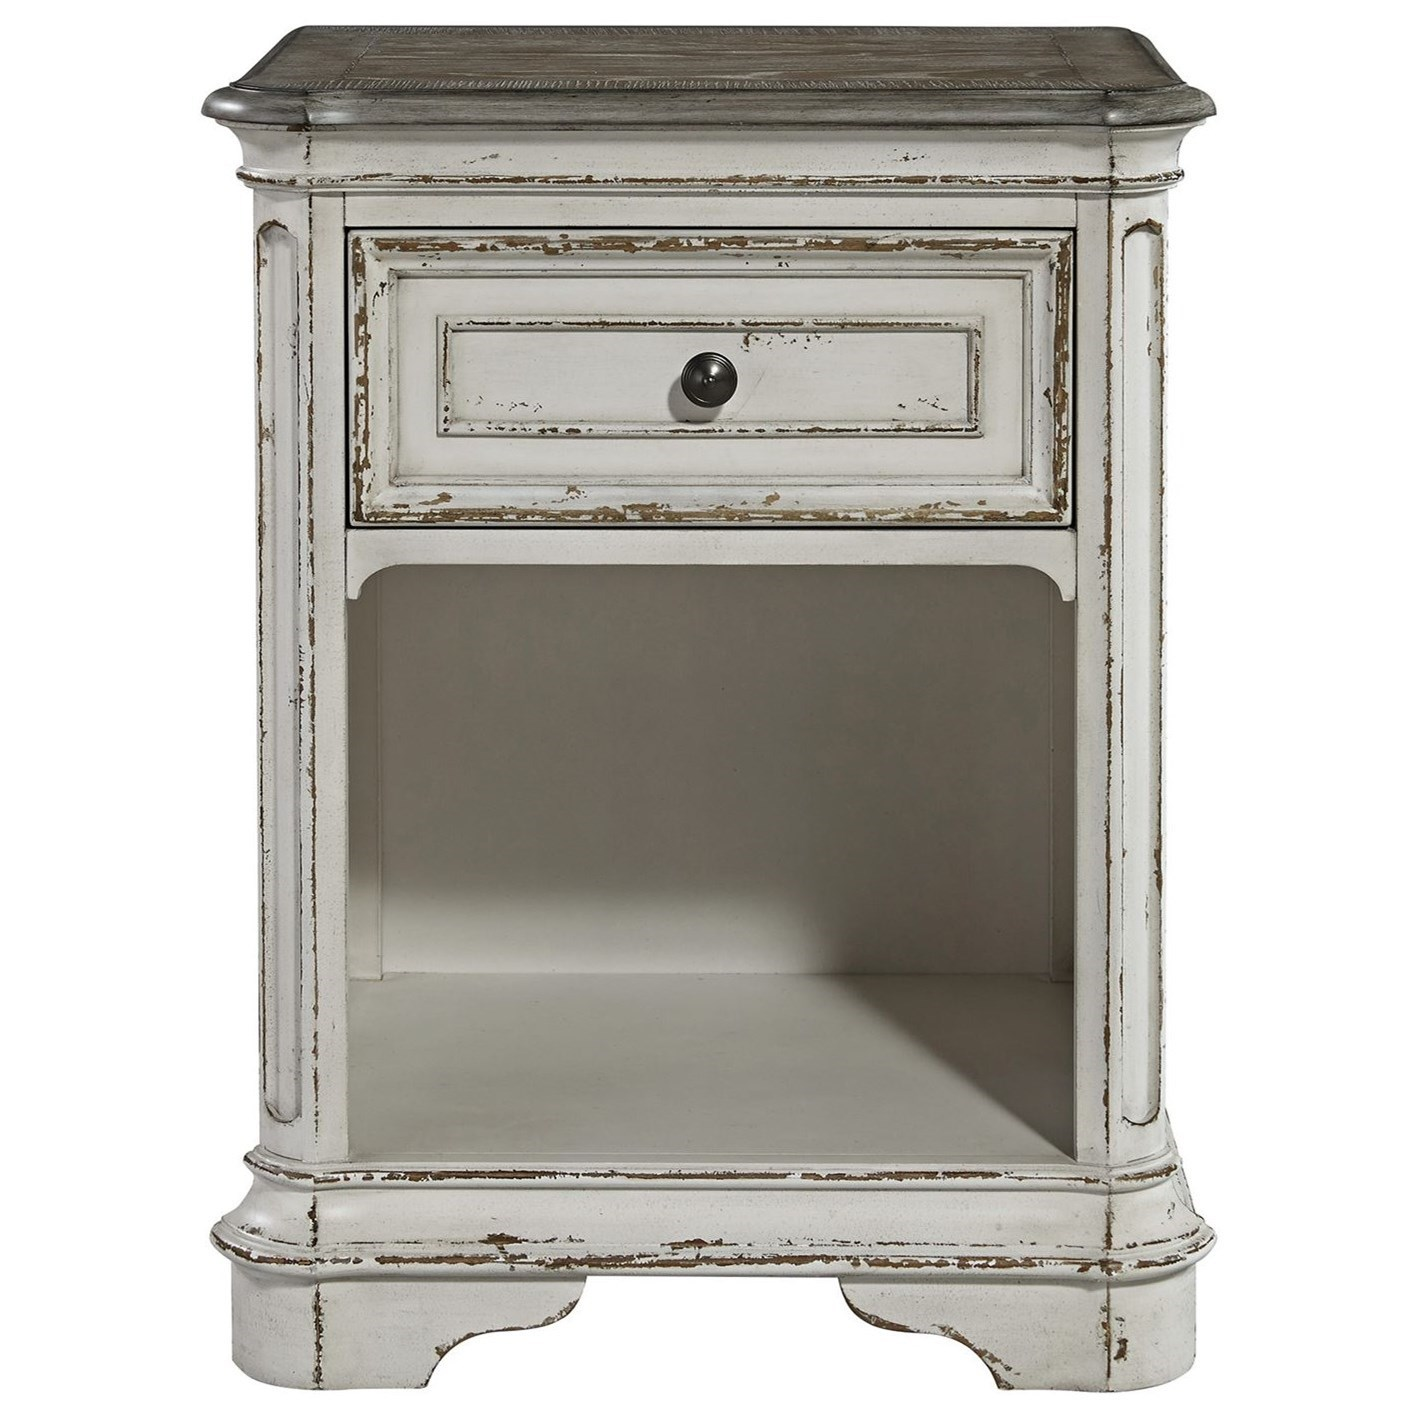 Magnolia Manor 1 Drawer Nightstand by Liberty Furniture at Johnny Janosik